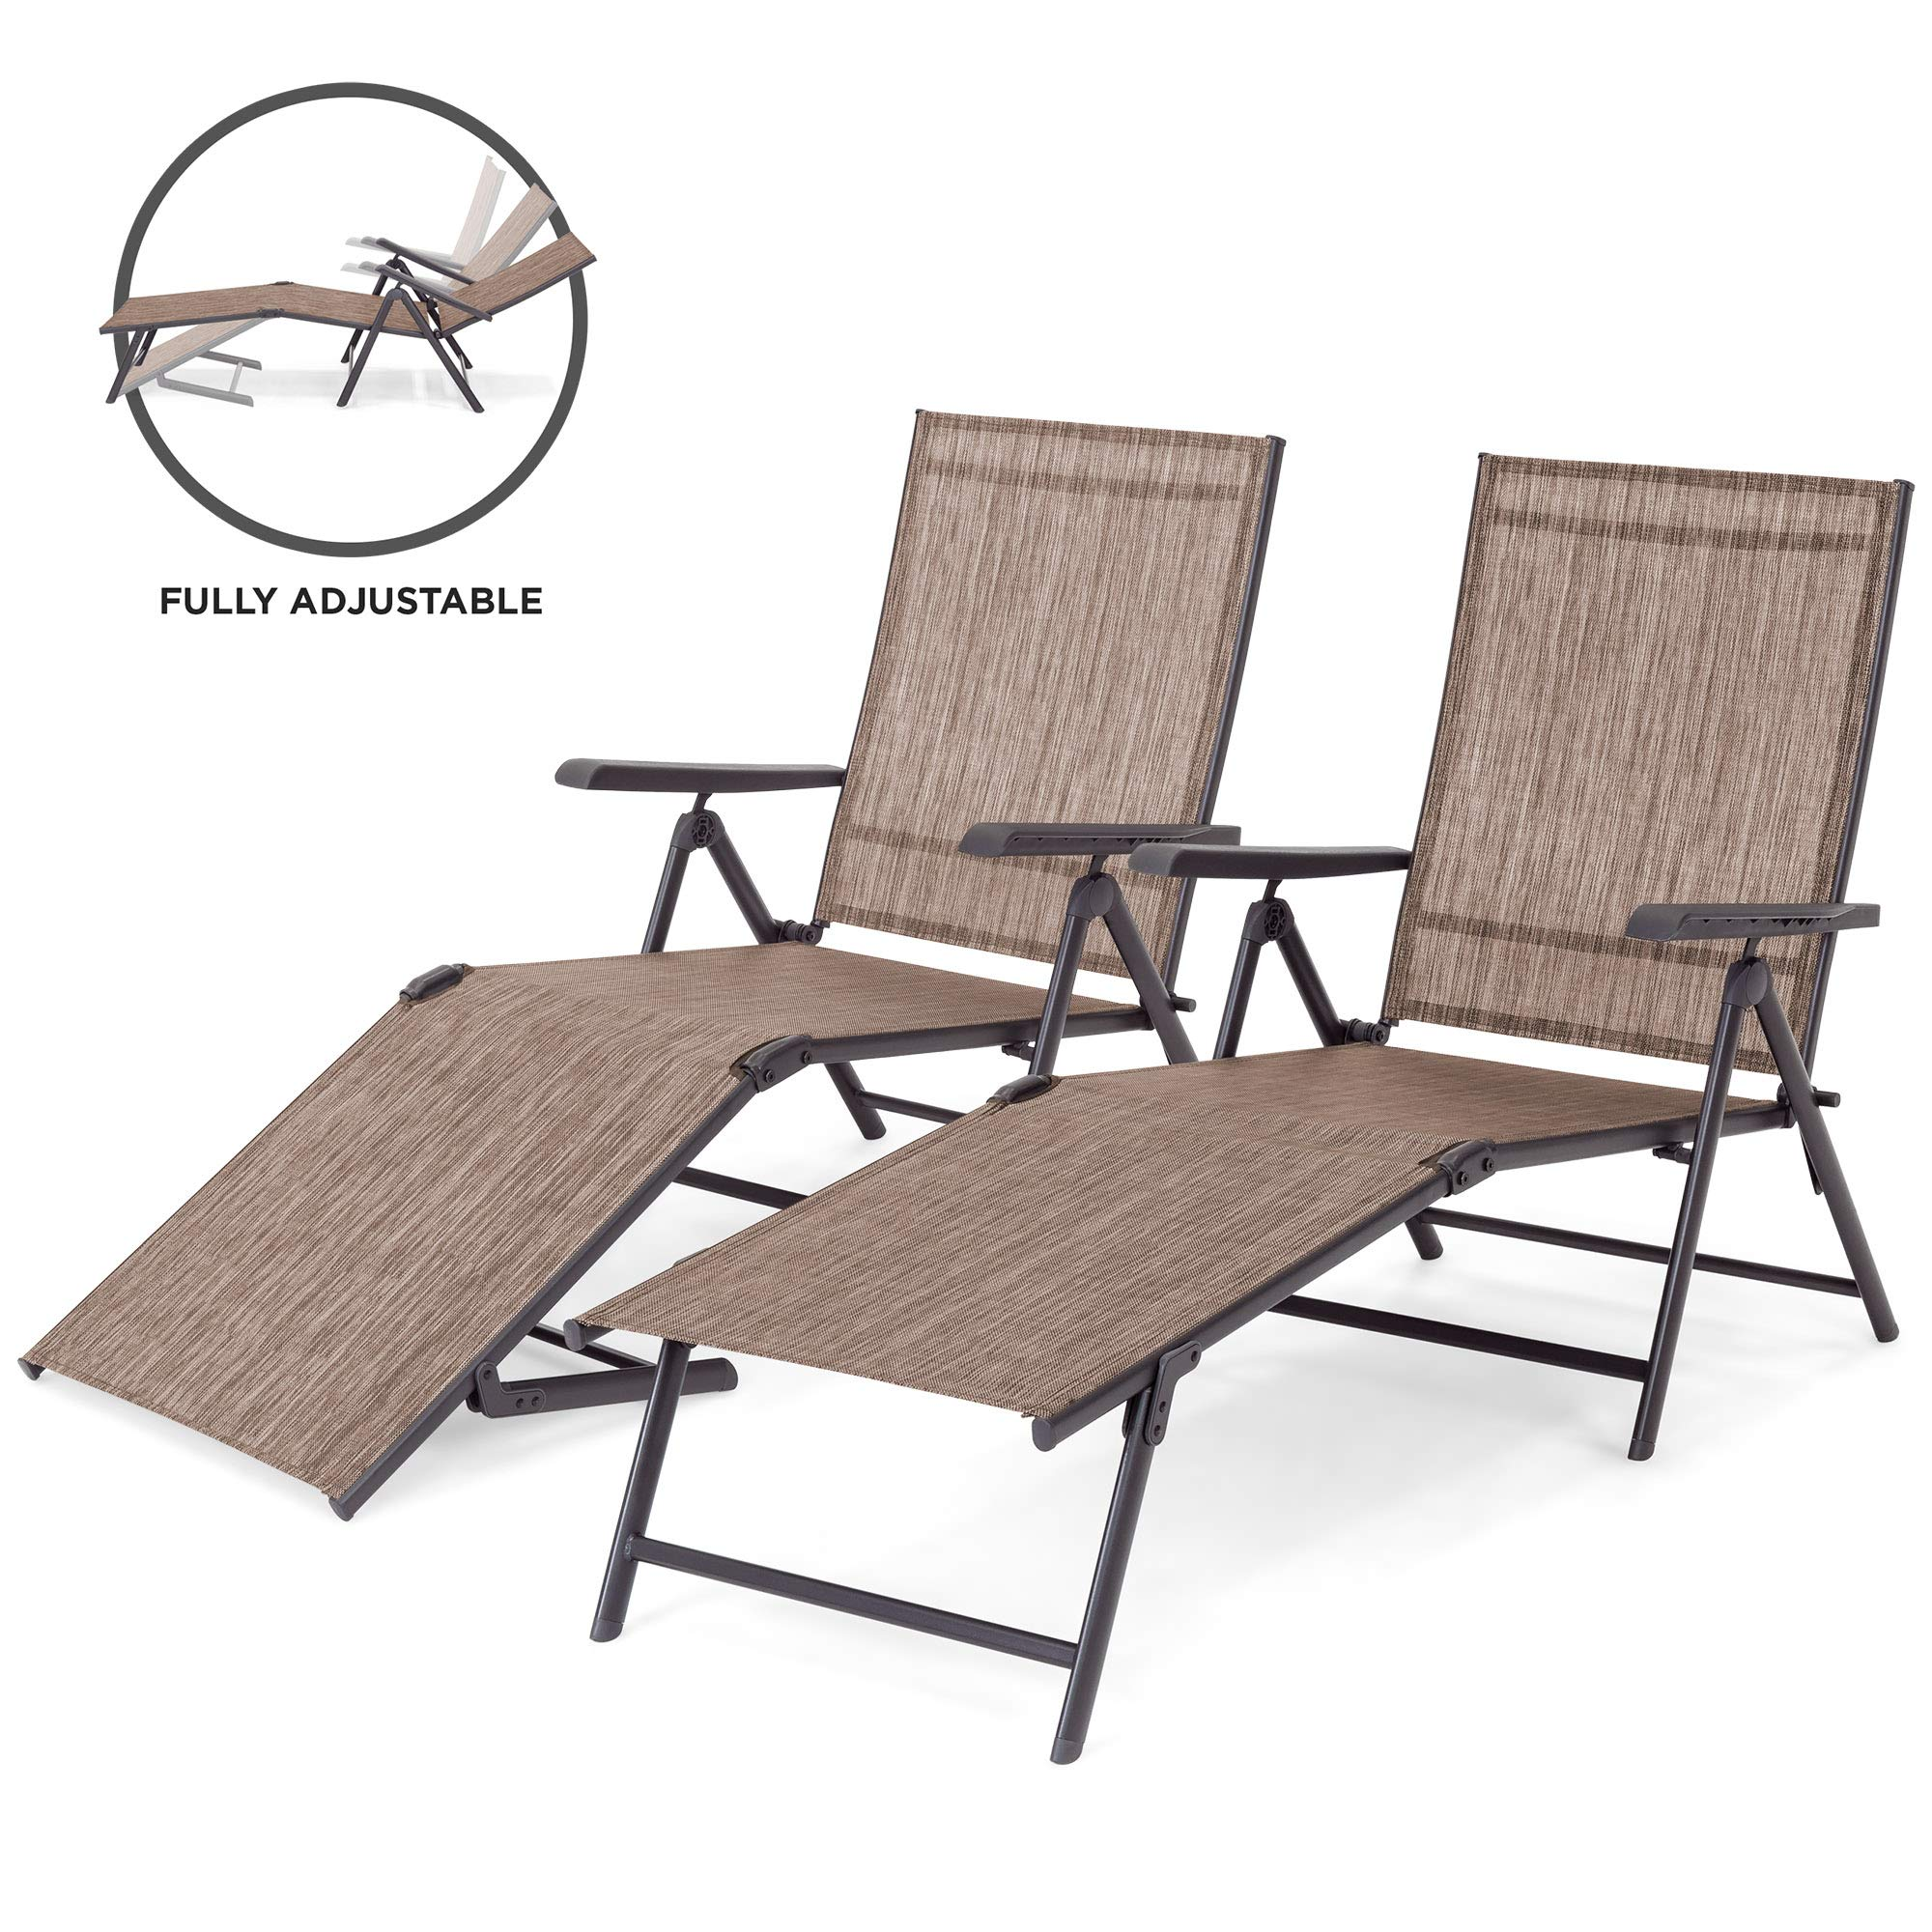 Best Choice Products Set of 2 Outdoor Adjustable Folding Steel Textiline Chaise Reclining Lounge Chairs w/ 4 Back & 2 Leg Positions, Brown by Best Choice Products